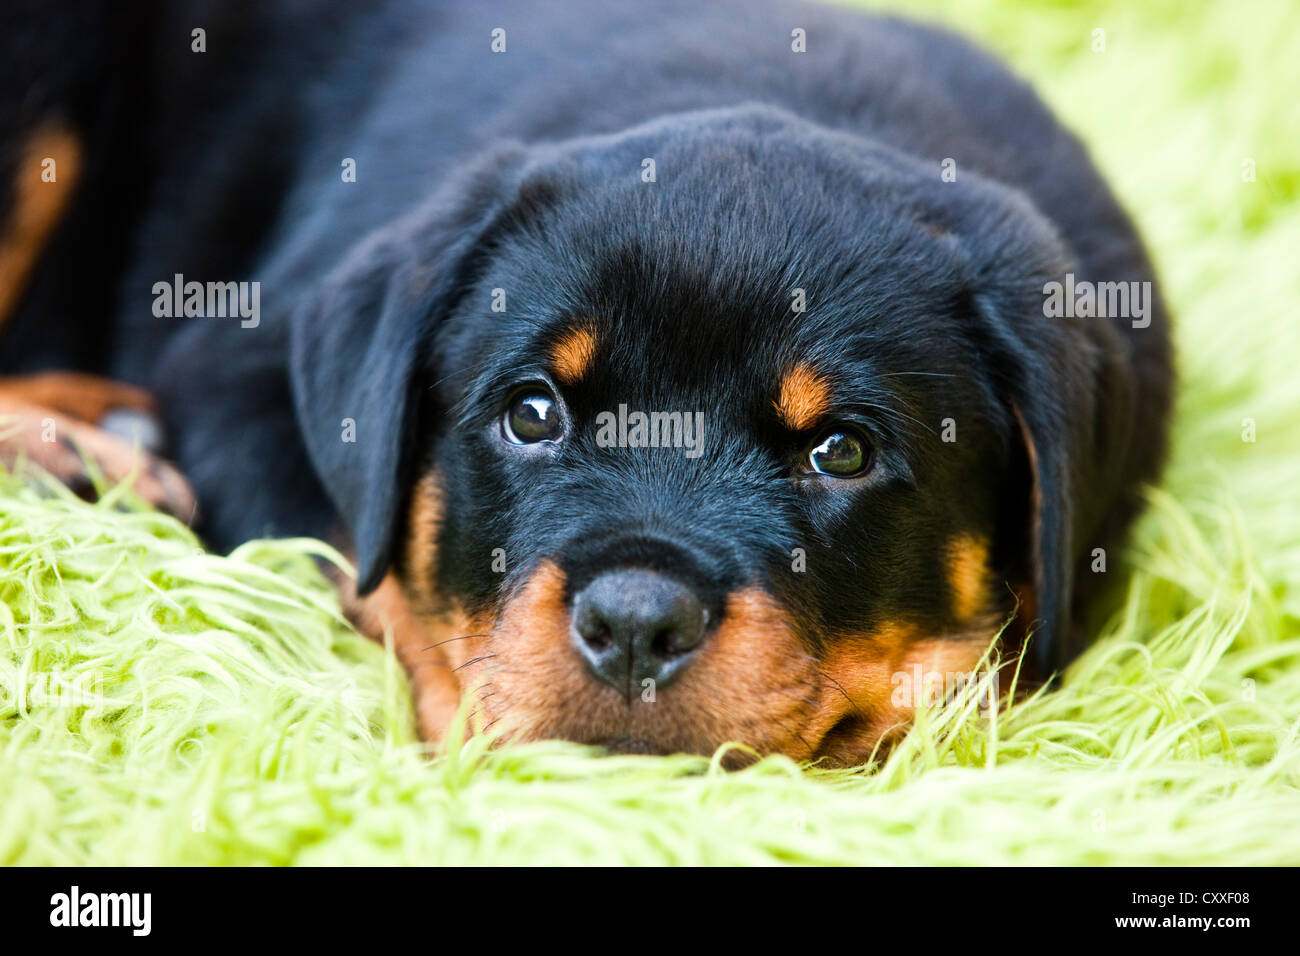 Rottweiler puppy dog lying in a dog bed, North Tyrol, Austria, Europe - Stock Image